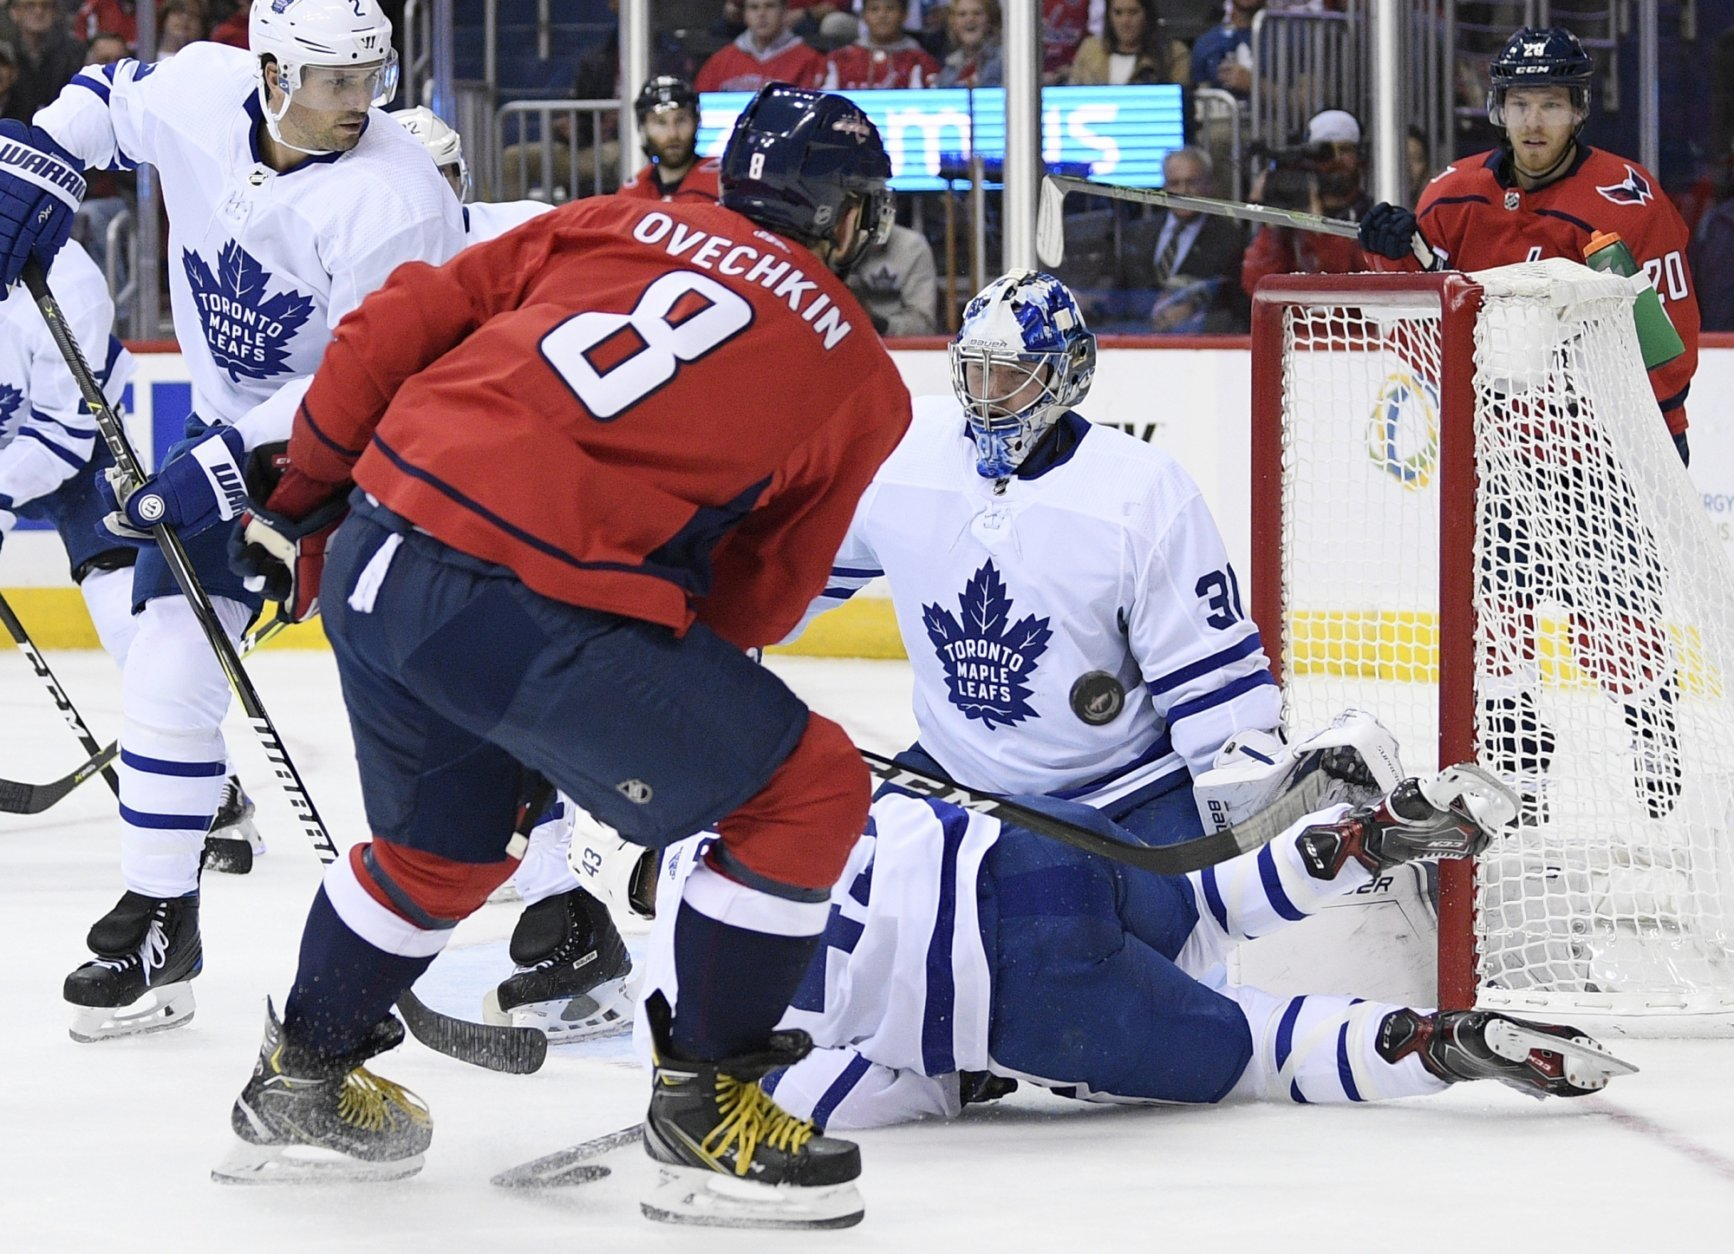 Toronto Maple Leafs goaltender Frederik Andersen (31), of Denmark, stops the puck against Washington Capitals left wing Alex Ovechkin (8), of Russia, during the second period of an NHL hockey game, Saturday, Oct. 13, 2018, in Washington. Also seen is Maple Leafs defenseman Ron Hainsey (2). (AP Photo/Nick Wass)